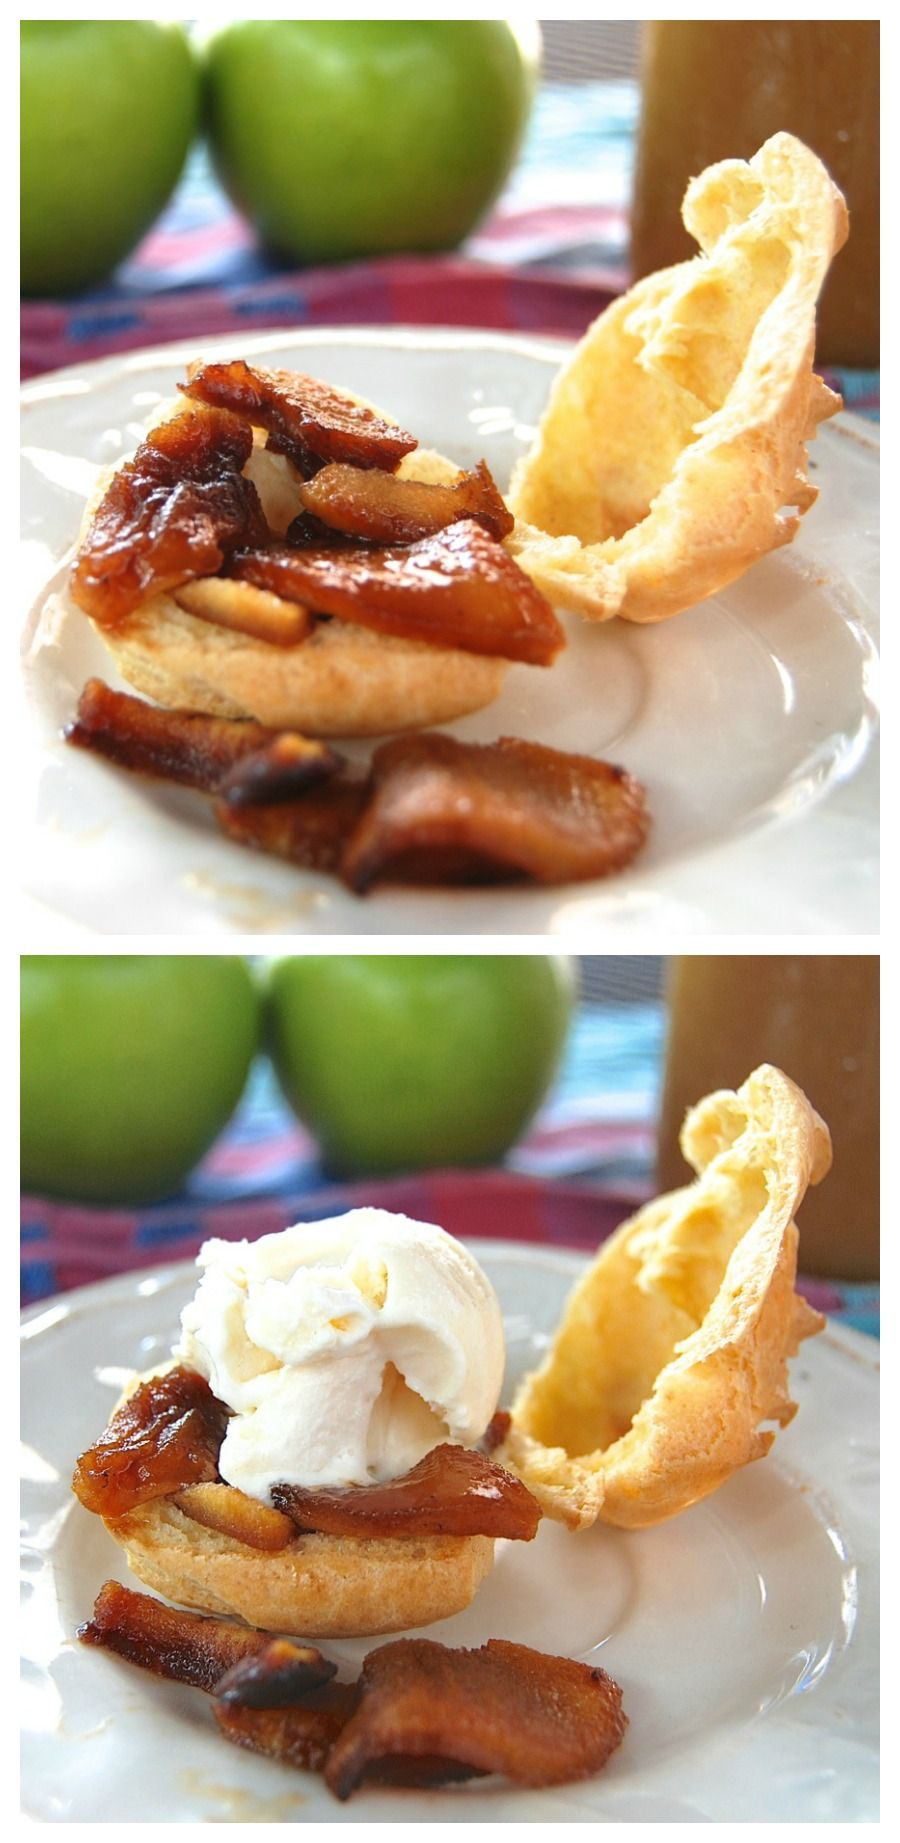 Whole-grain cream puffs? Trust me, these lighter-than-air puffs, made with whole wheat and bread flour, are the perfect vehicle for caramelized apples, ice cream, and rich, buttery apple-caramel sauce.